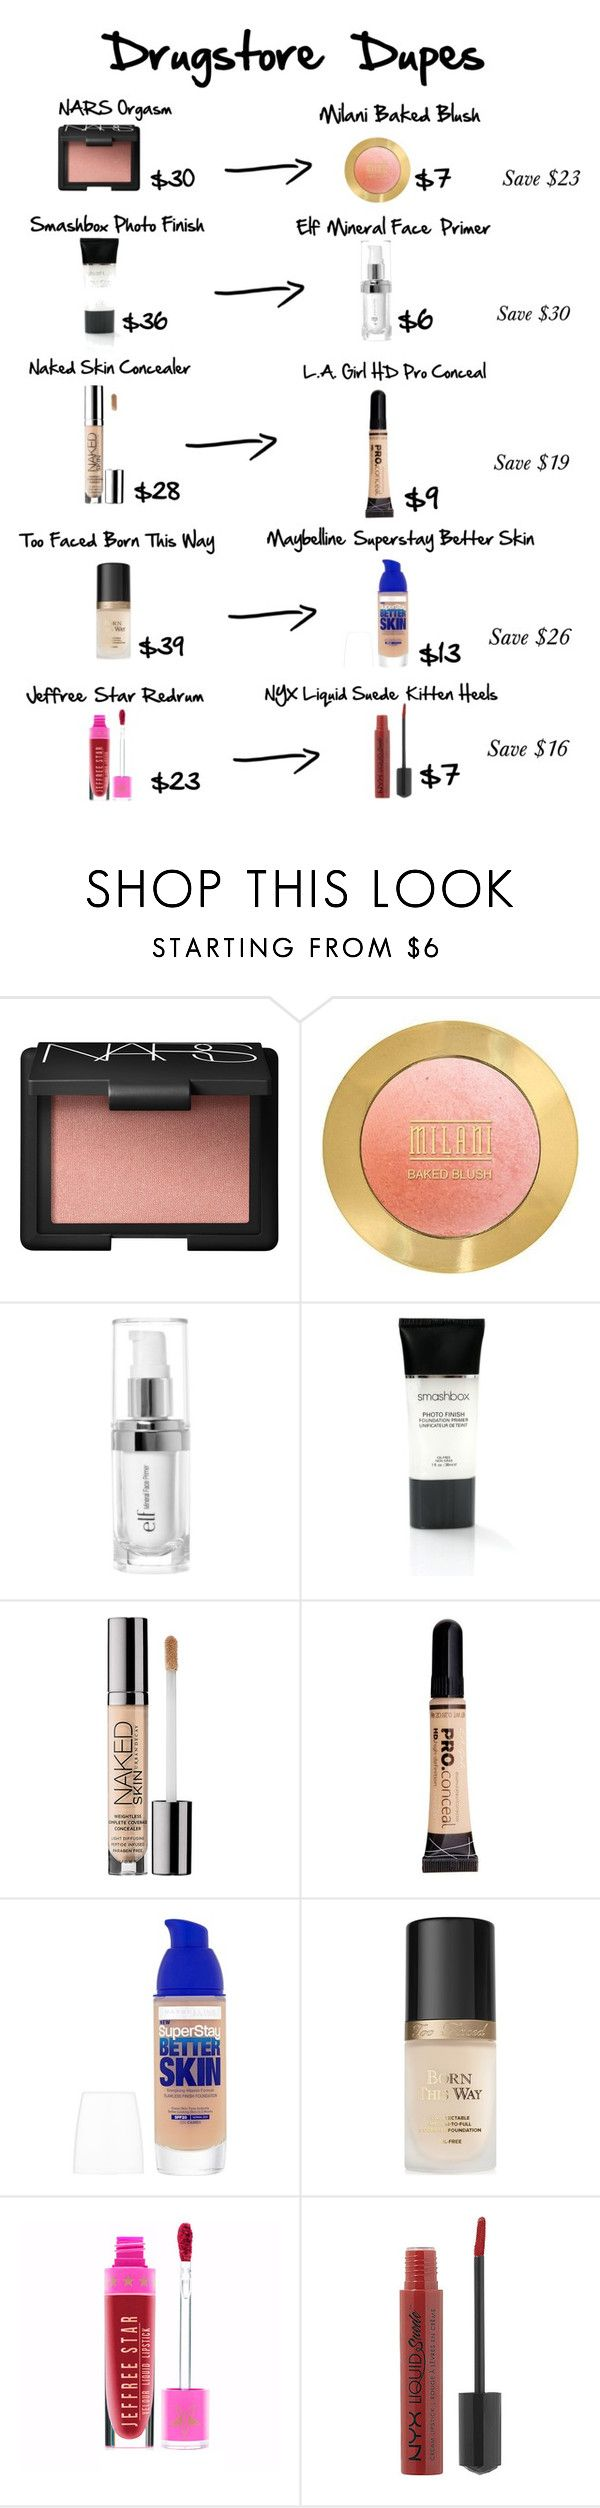 """Drugstore Dupes"" by niclex ❤ liked on Polyvore featuring beauty, NARS Cosmetics, e.l.f., Smashbox, Urban Decay, Maybelline, Too Faced Cosmetics and NYX"